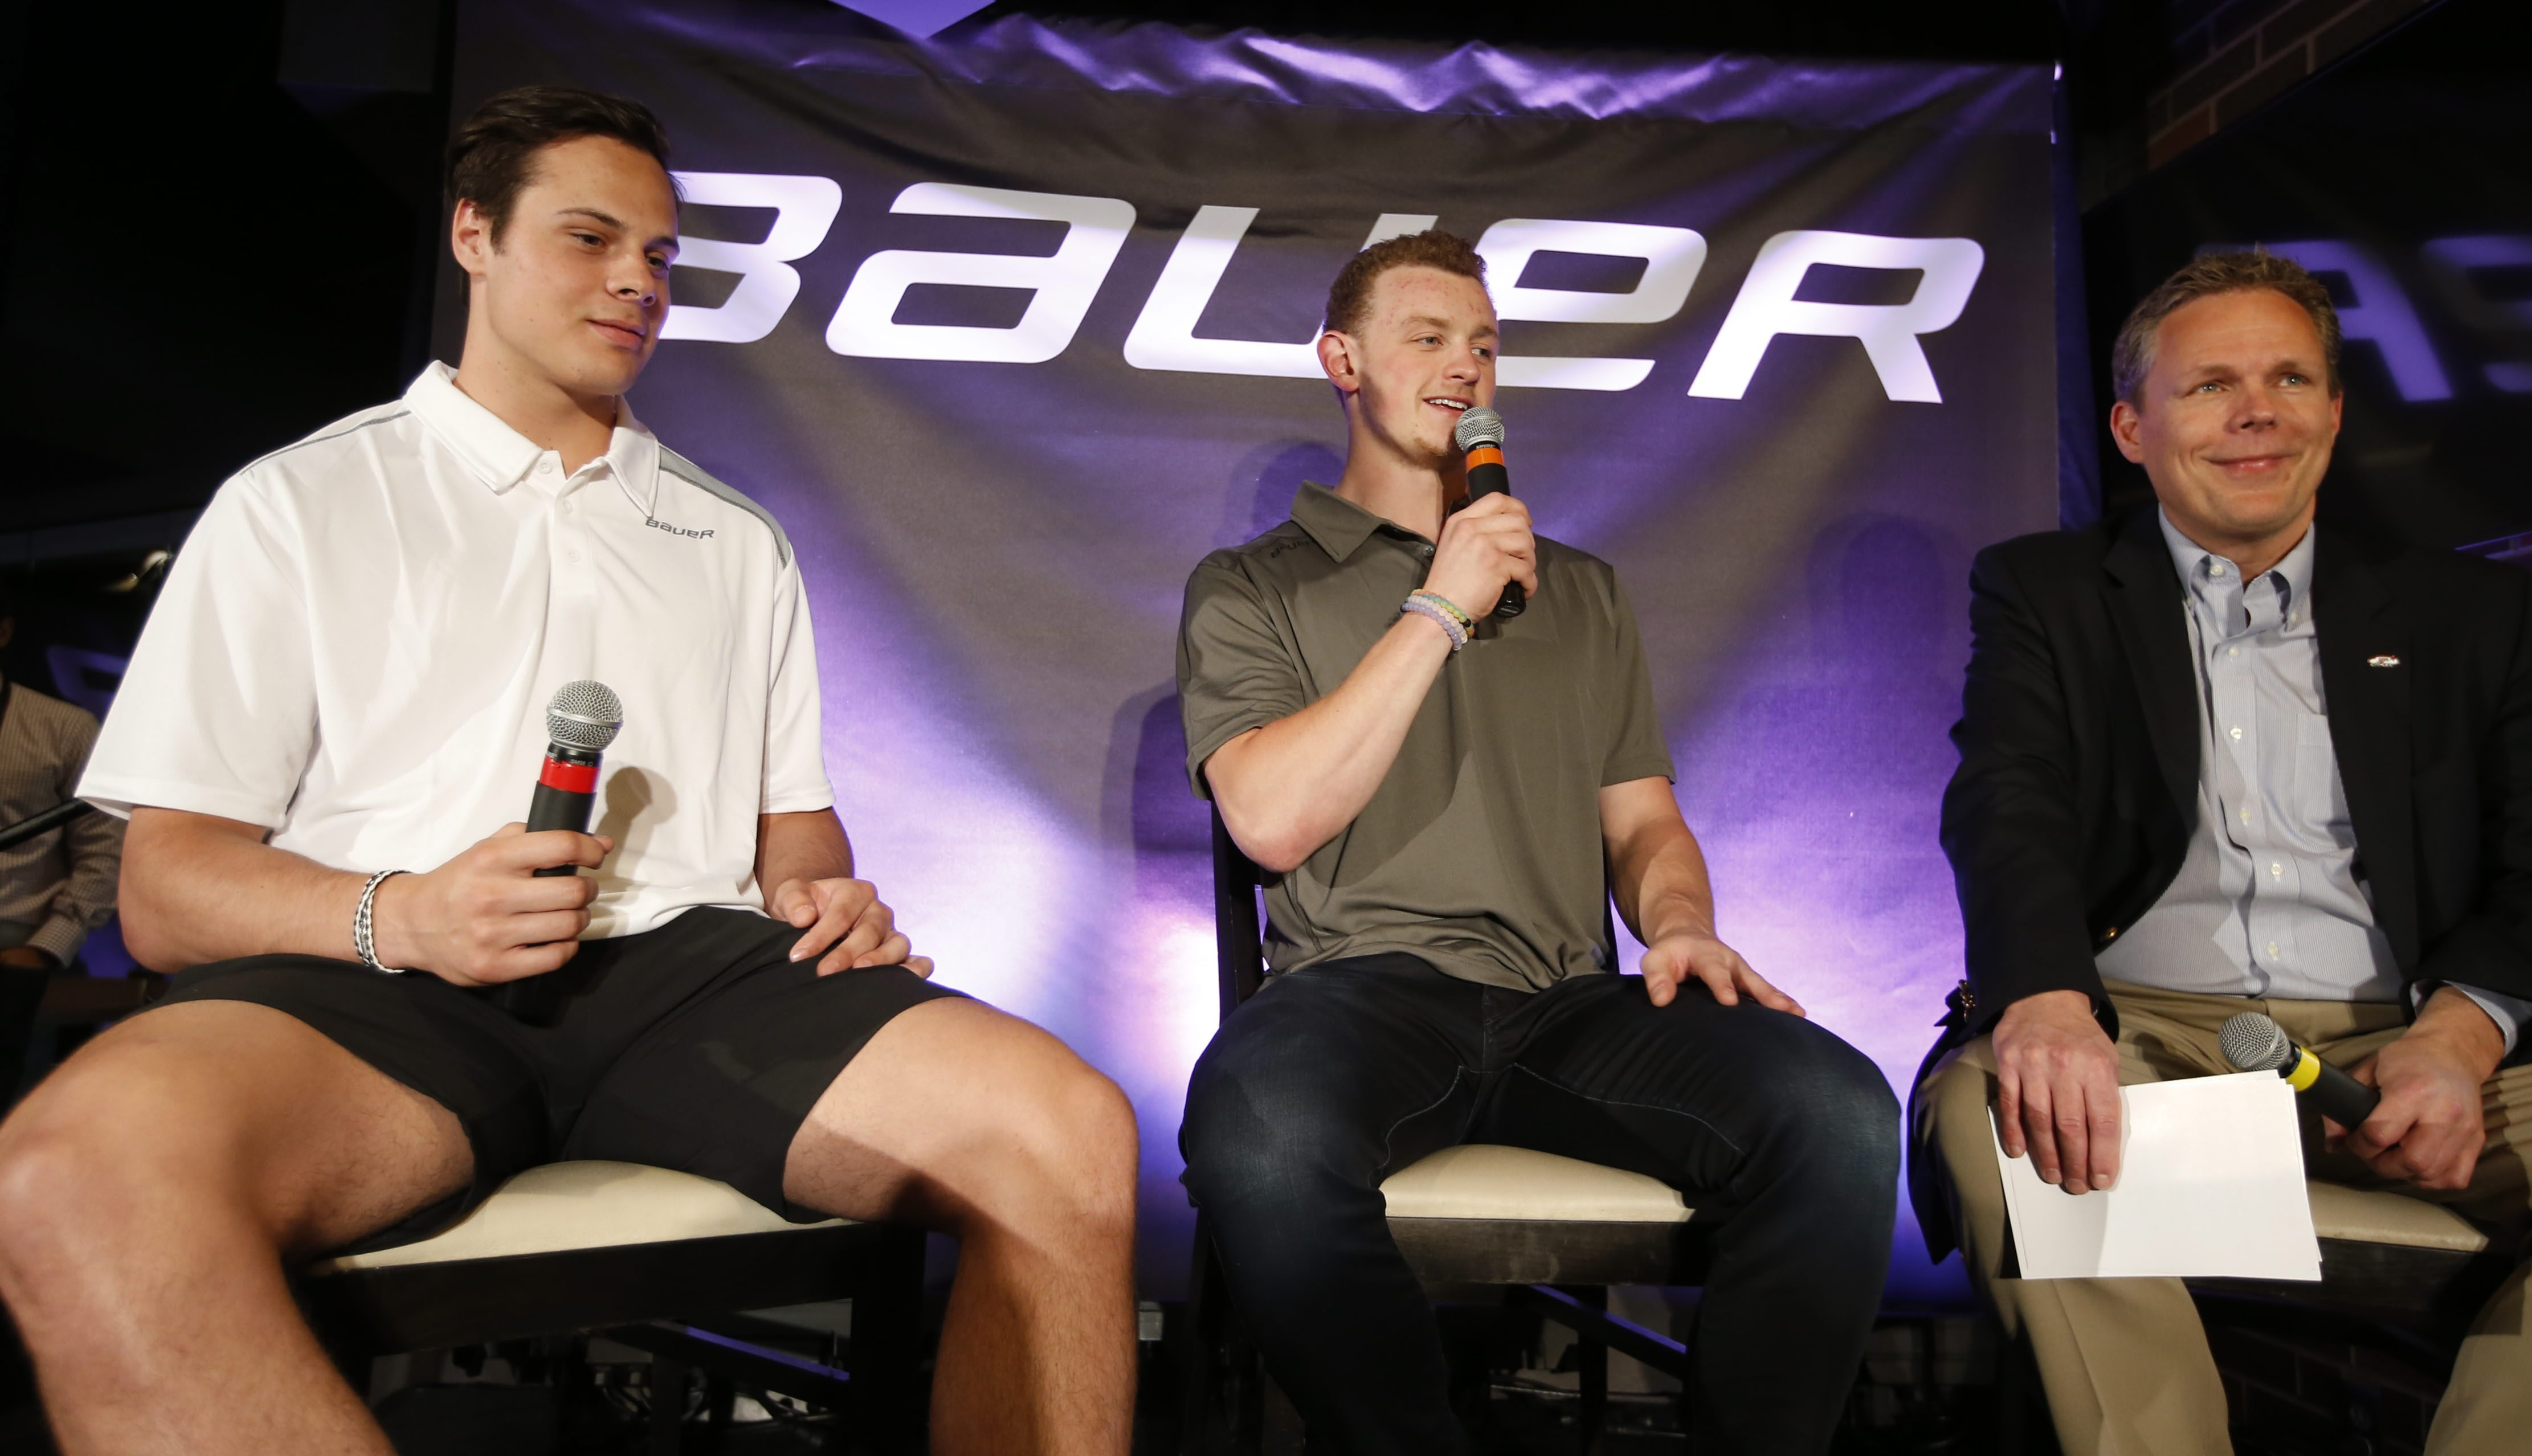 NHL prospect Auston Matthews and Buffalo Sabres Jack EIchel are interviewed during Bauer hockey equipment event on Thursday. (Harry Scull Jr./Buffalo News)